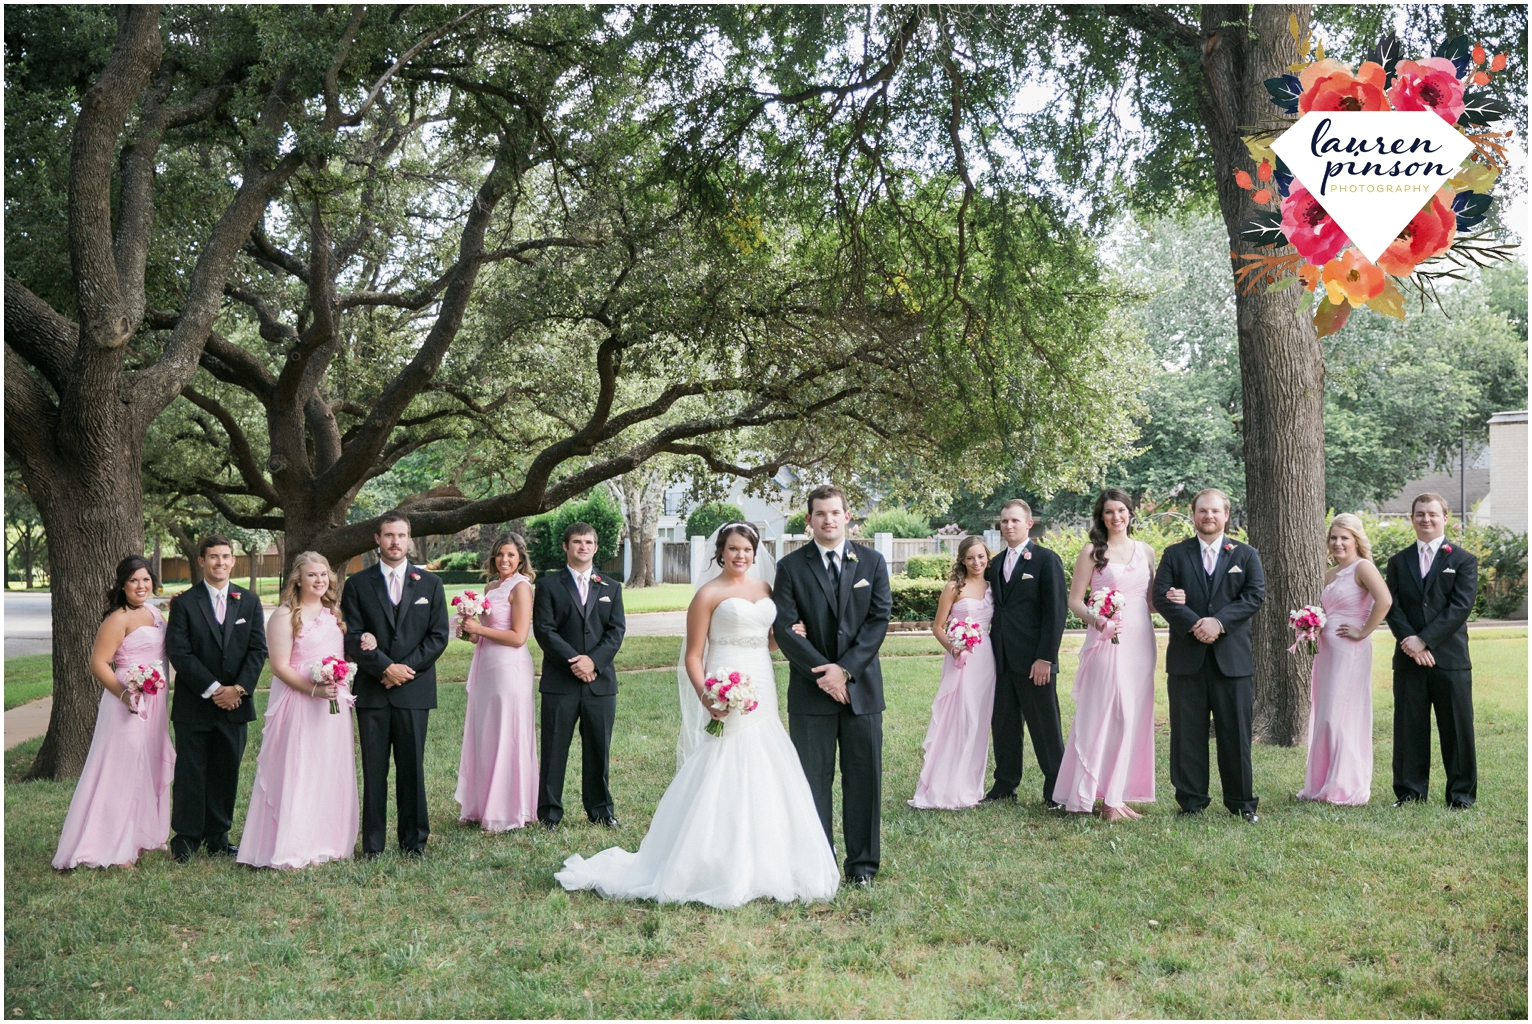 wichita-falls-wedding-photographer-kemp-center-at-the-forum-photography-two-clever-chicks_1016.jpg